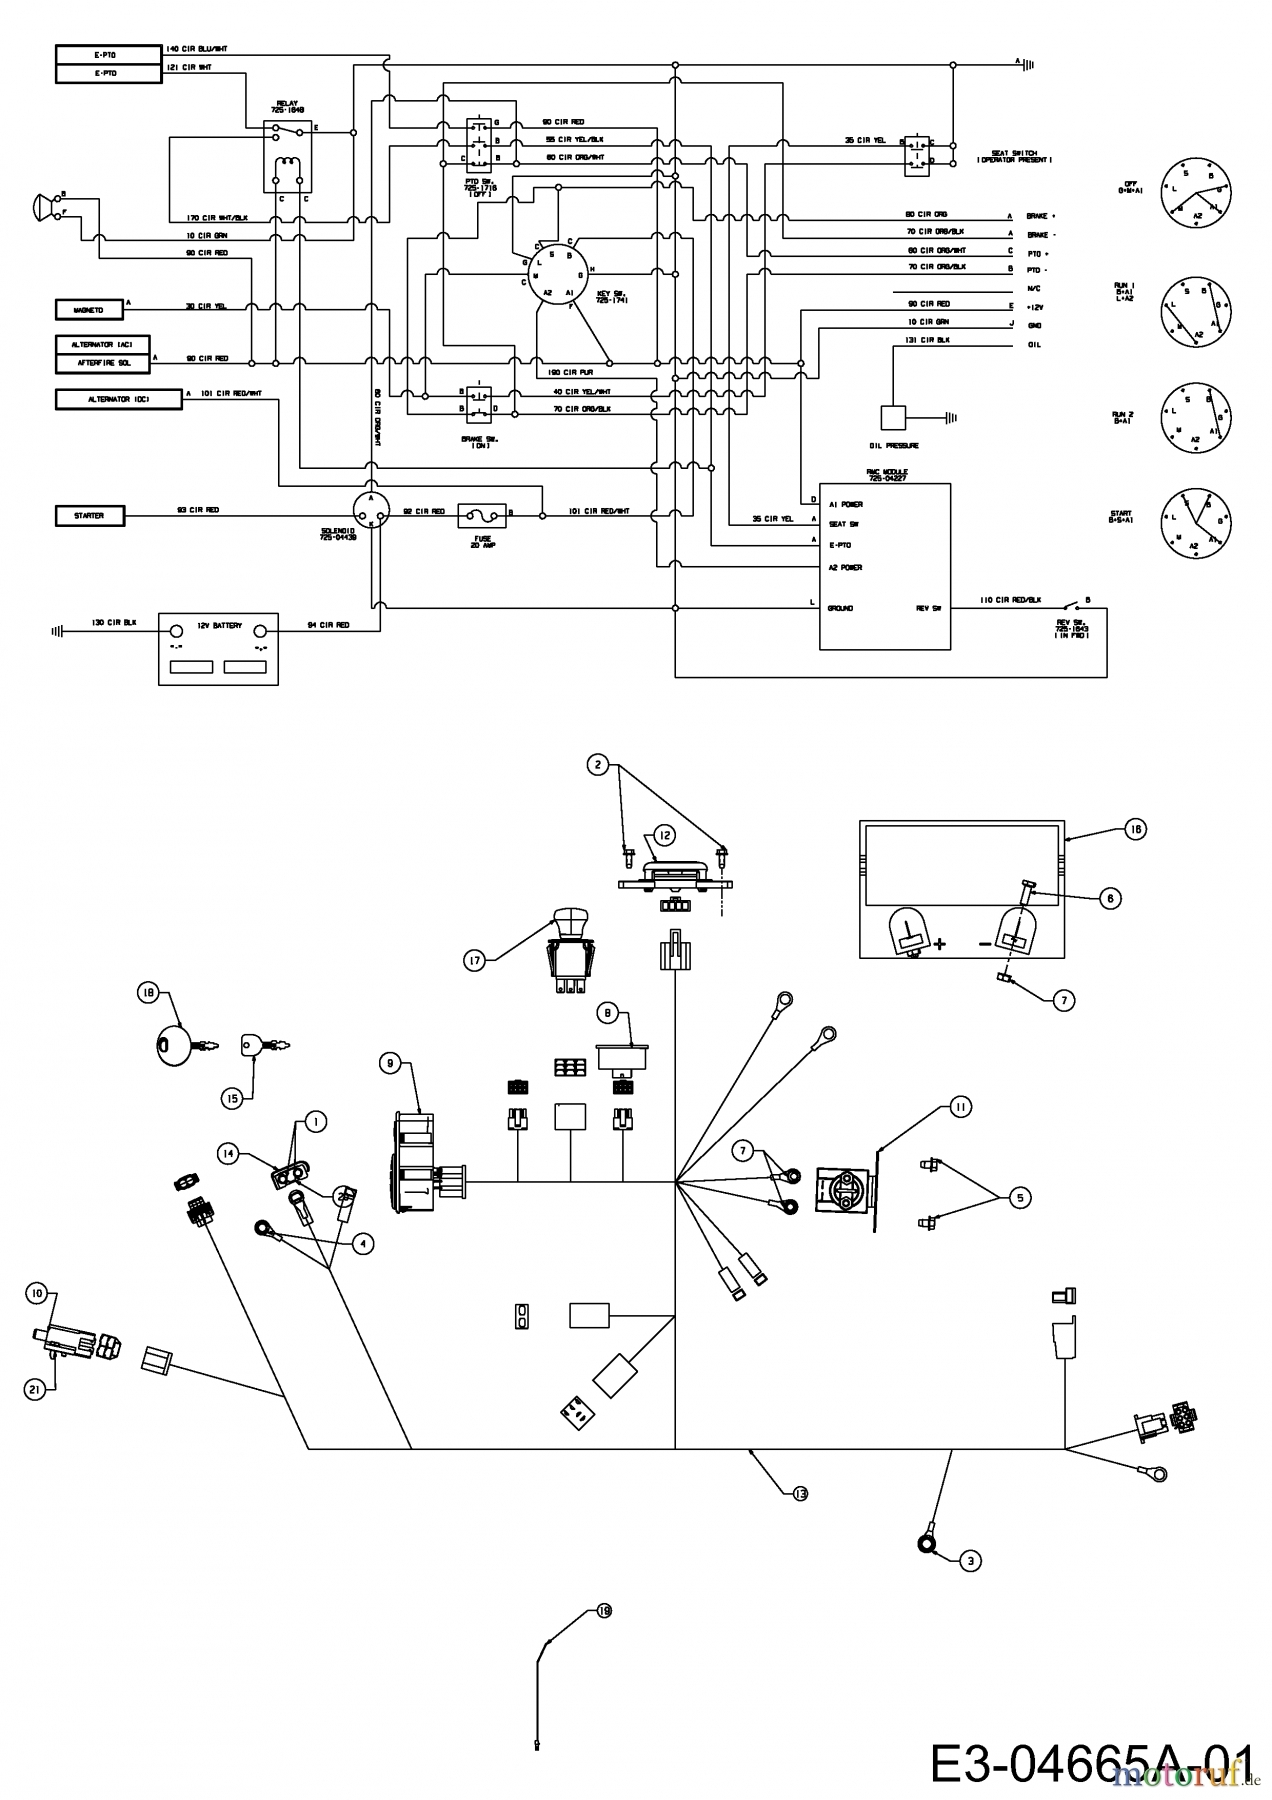 Diagram Of Electrical Plug 30 Amp Diagram Wiring Diagram